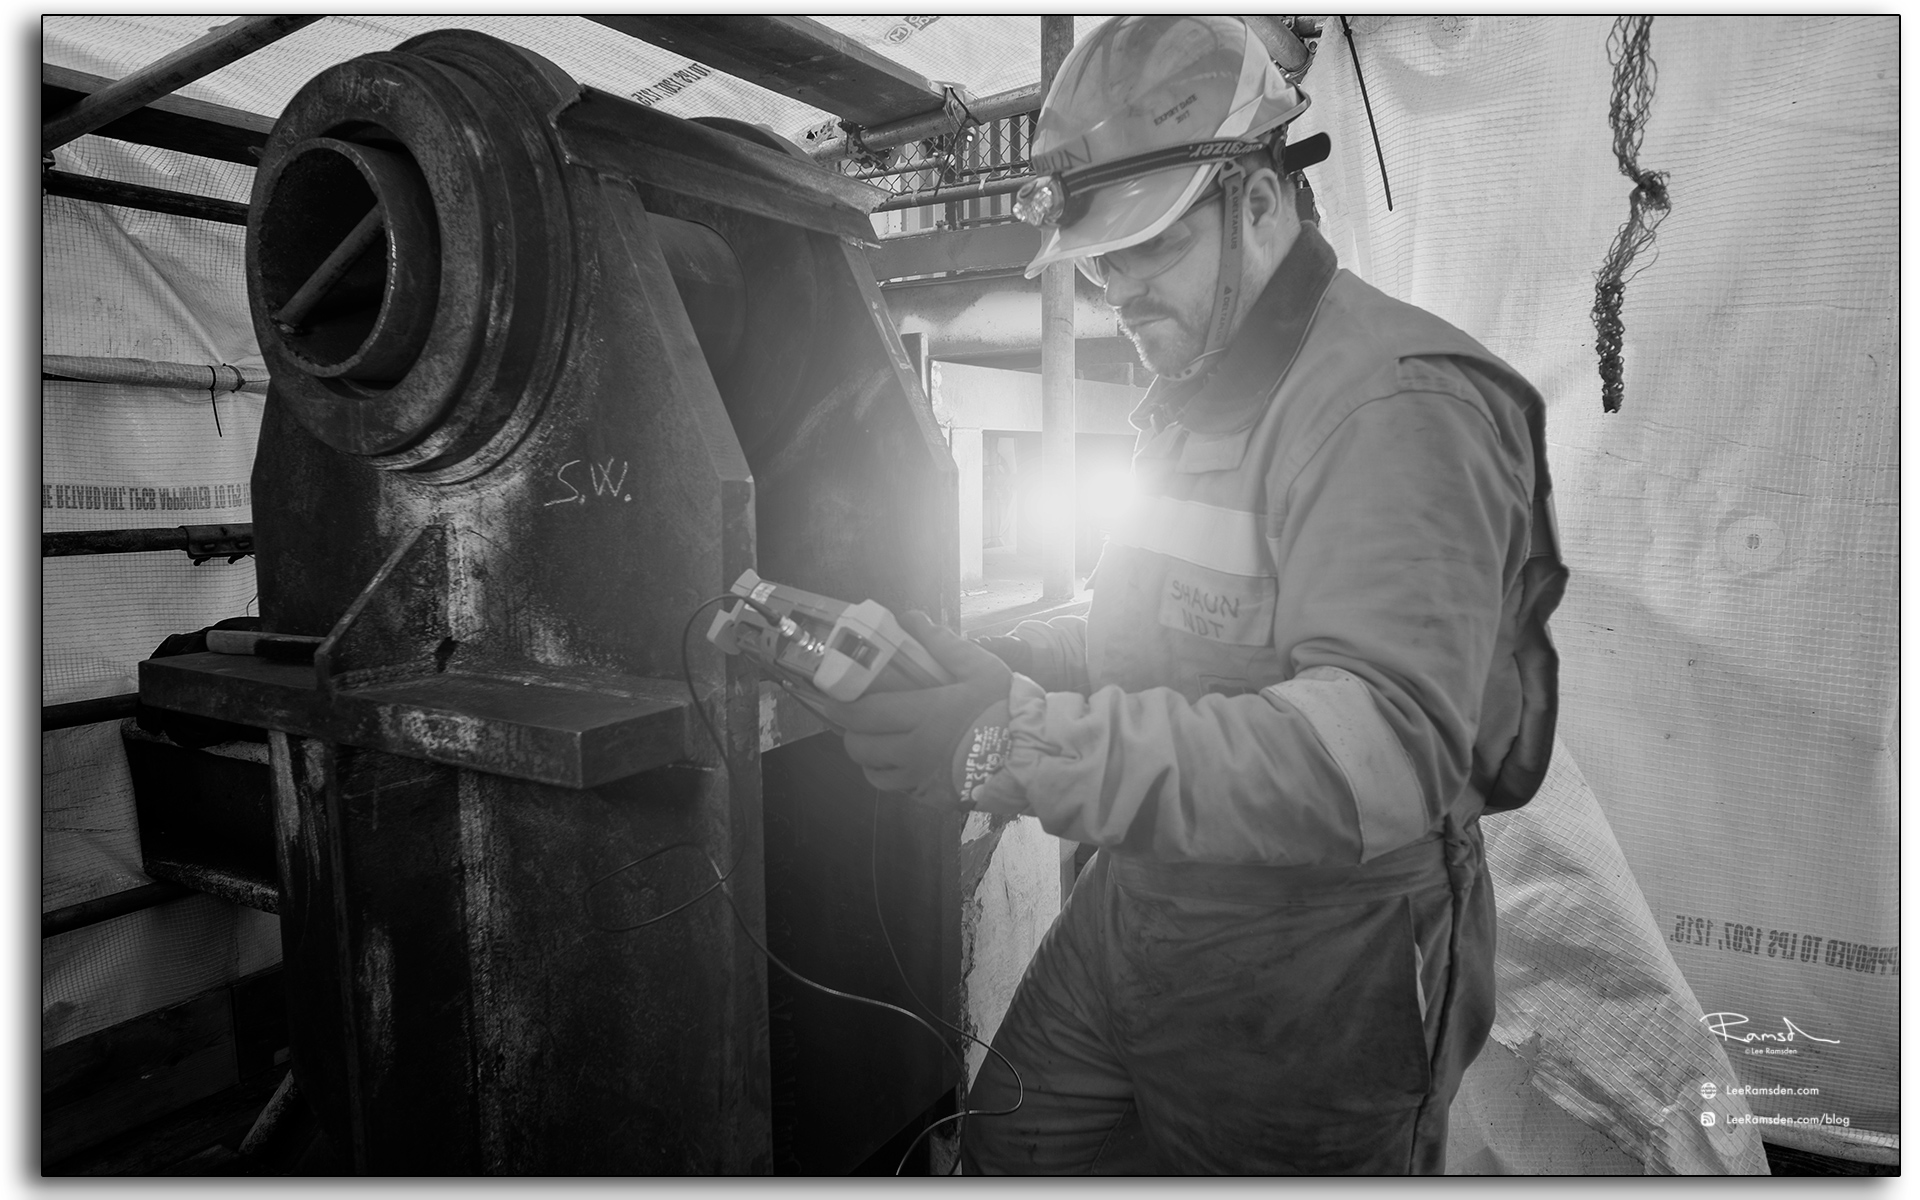 Shaun Clews, oil a nd gas, NDT tester, offshore, rig, platform, installation.